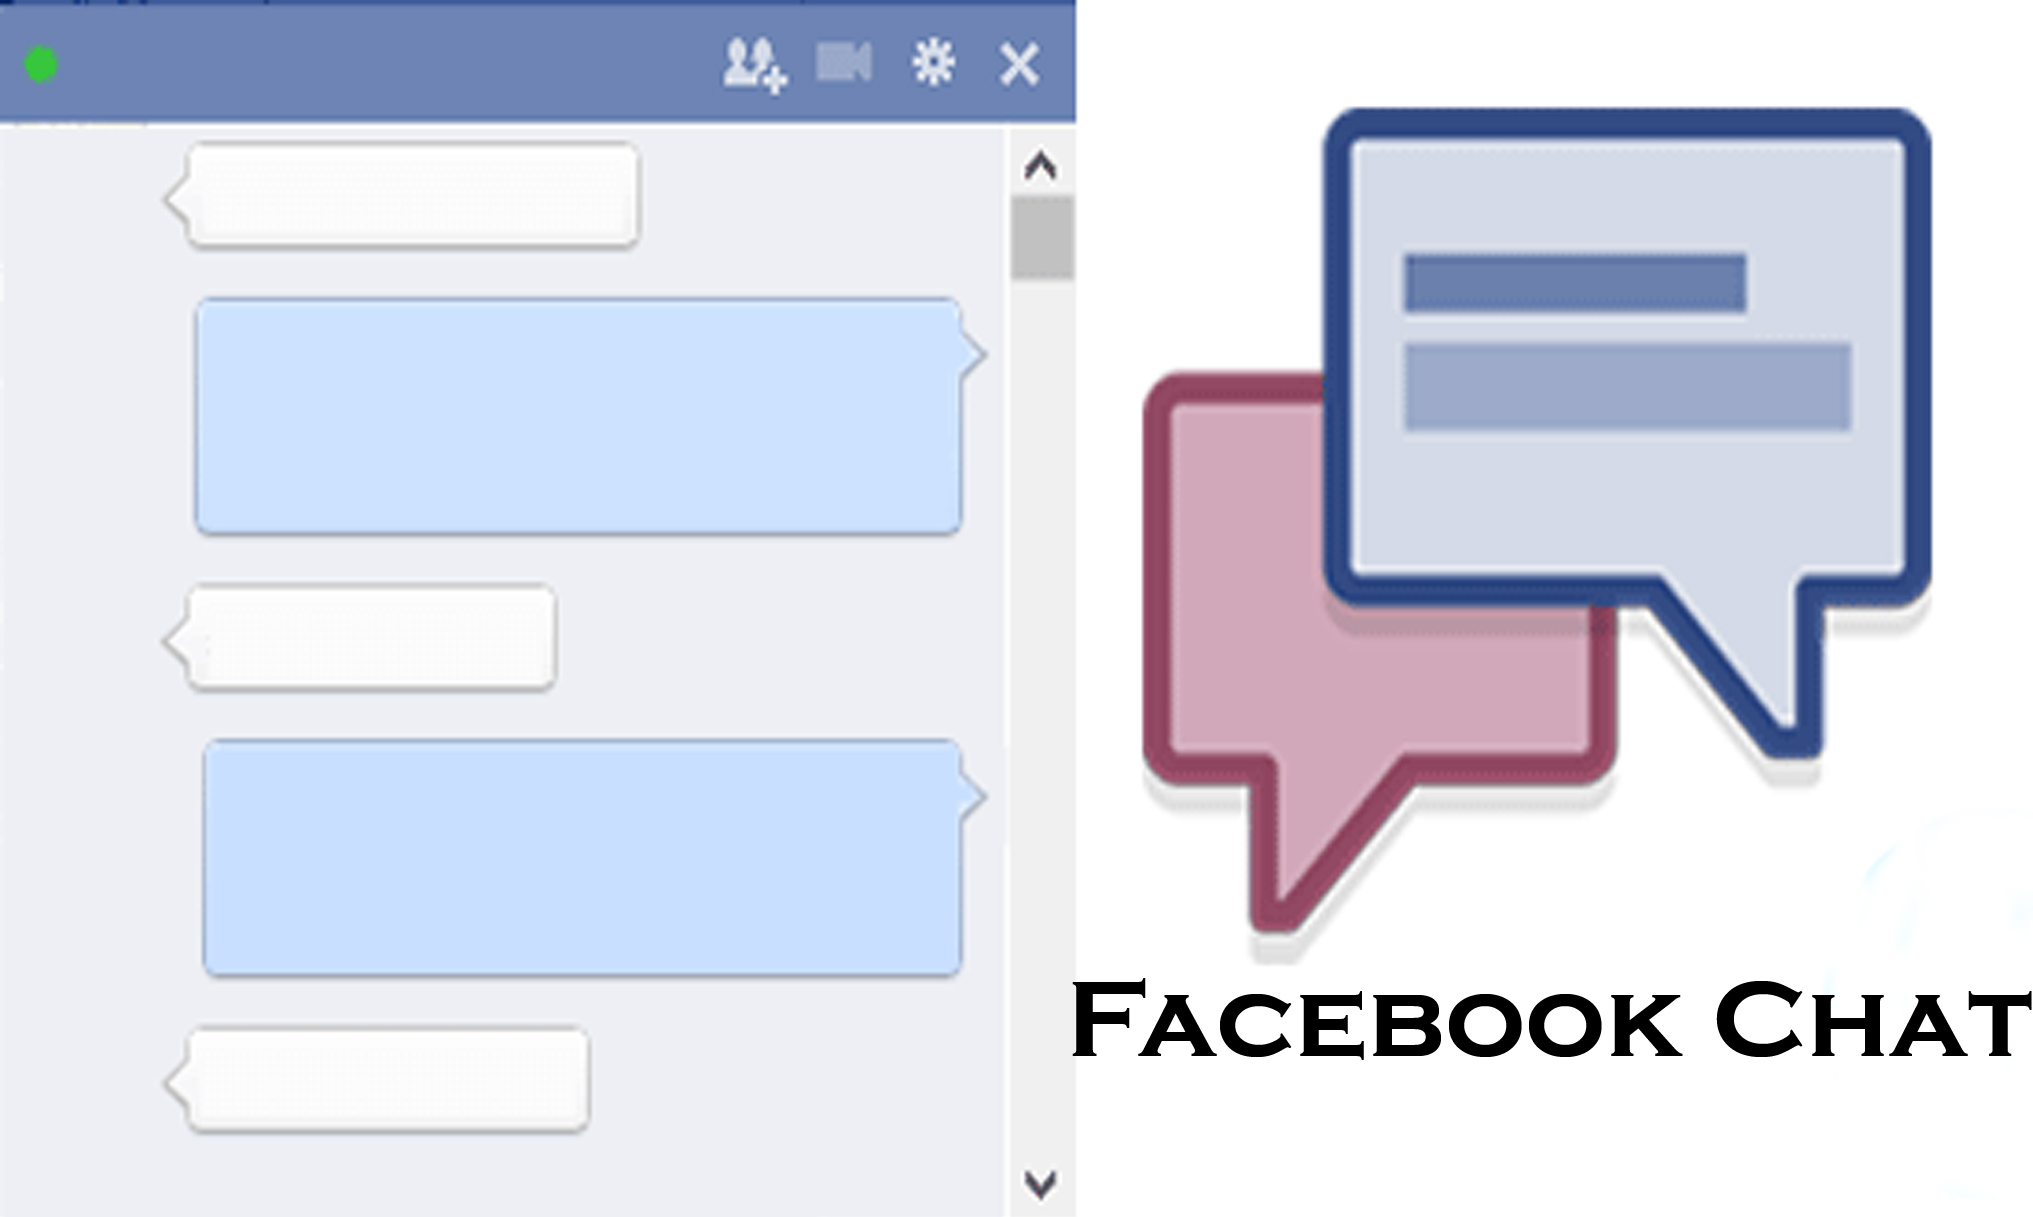 Facebook Chat - Facebook Messenger | Facebook Account